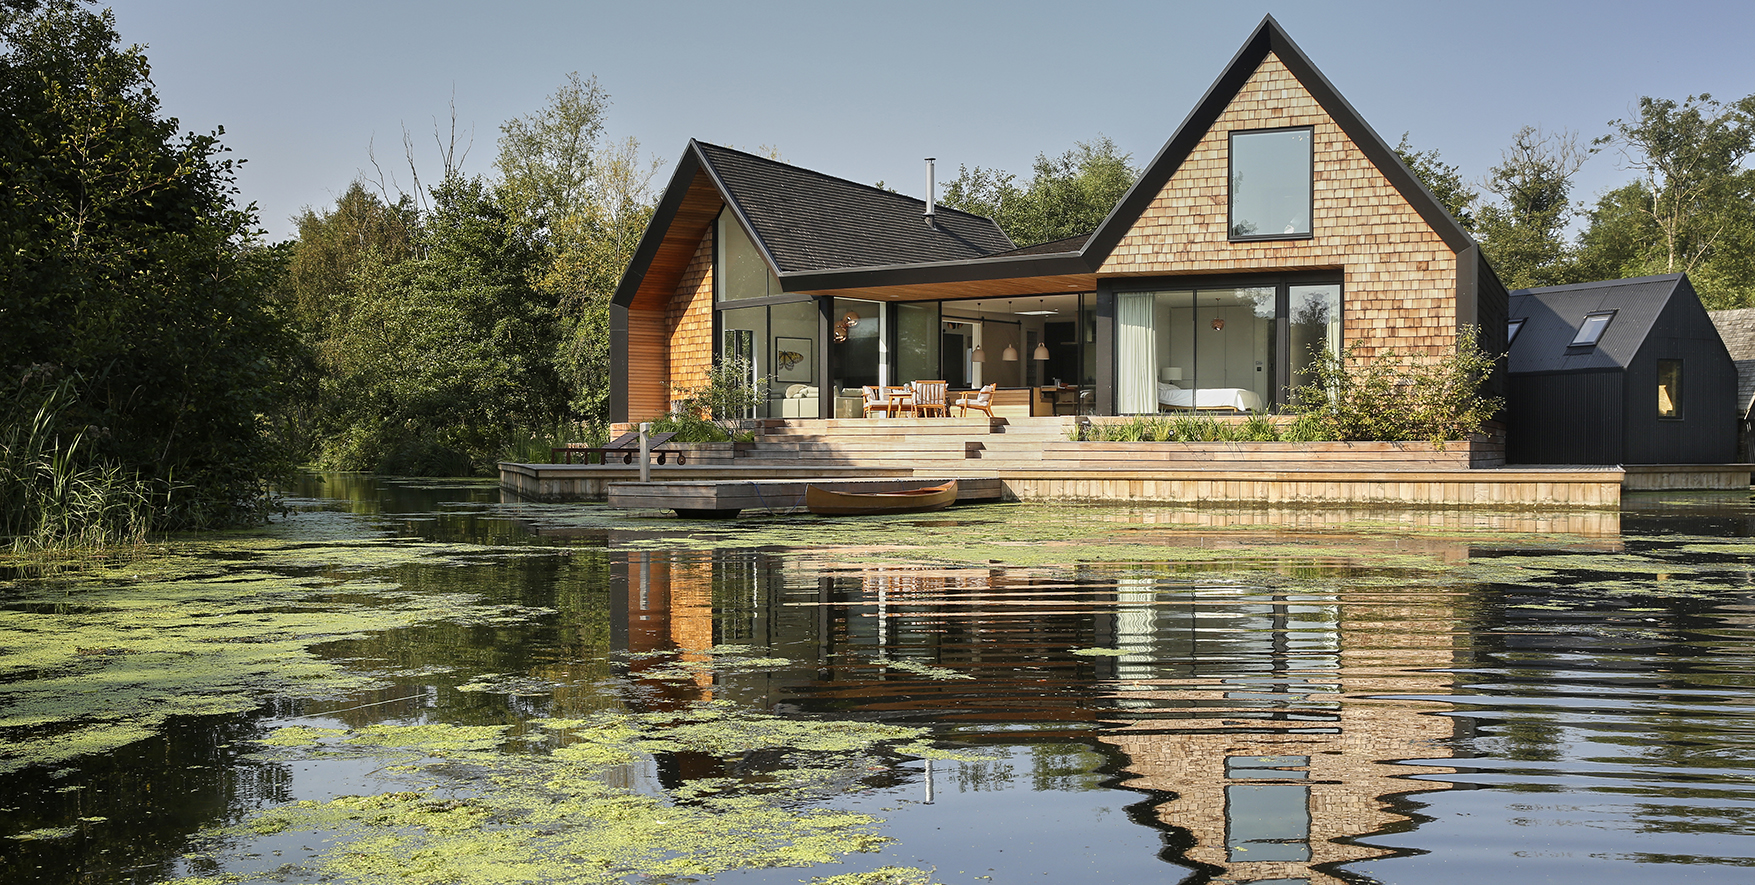 A vacation home in the Norfolk Broads featuring the Axel sliding door hardware from Krownlab